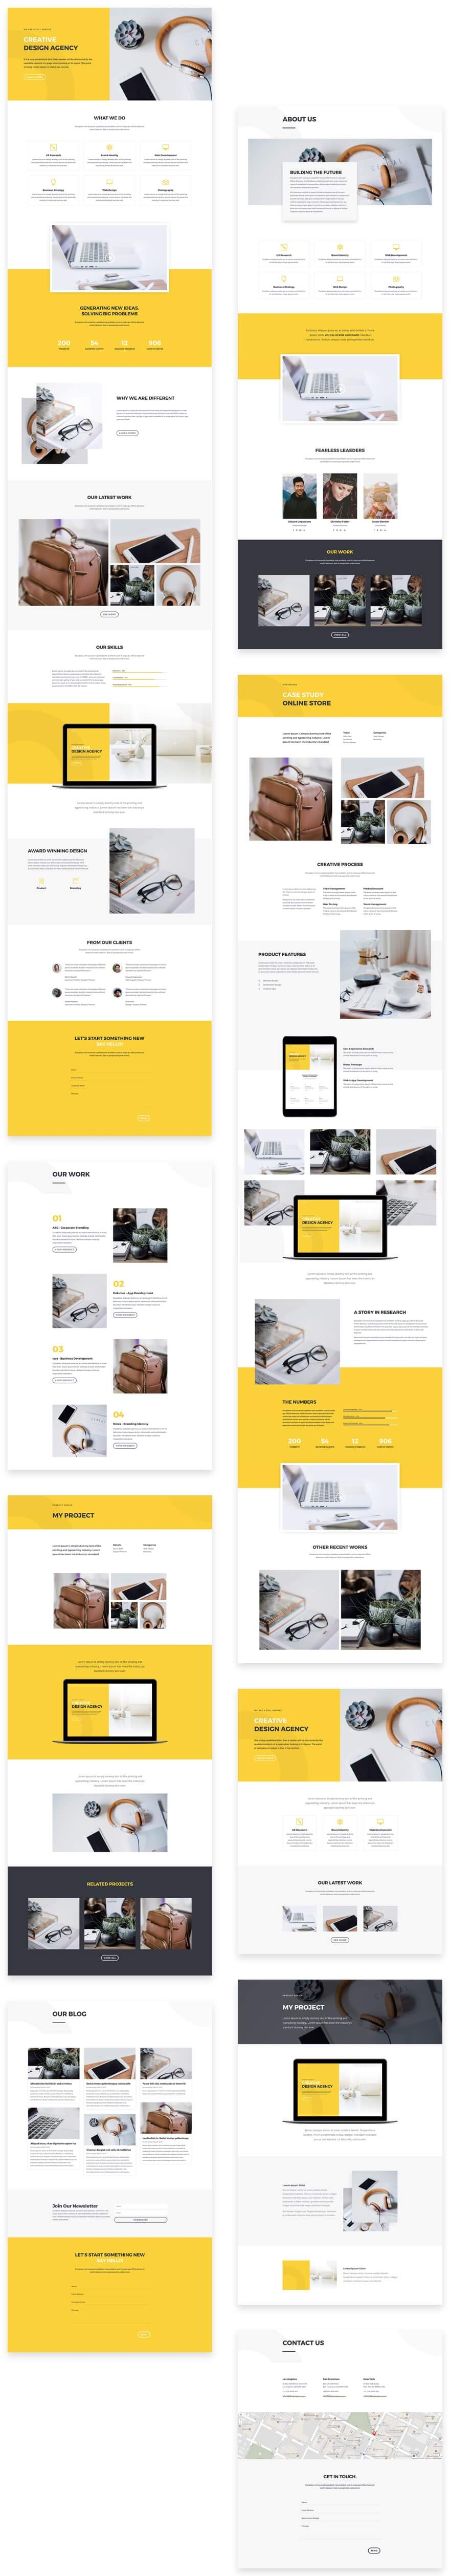 divi-layout-agency-layout-pack